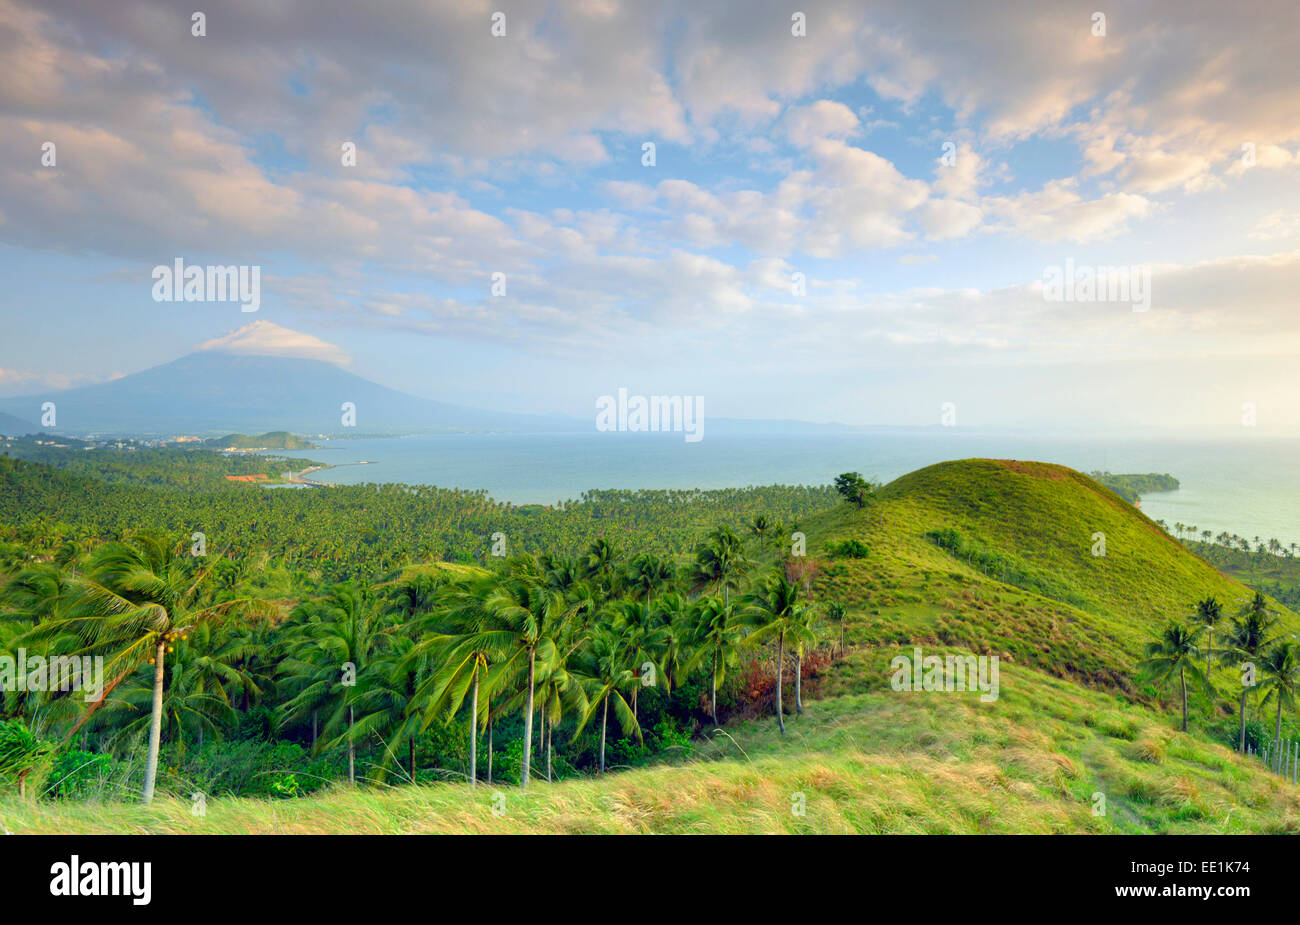 Mount Mayon Volcano, Legazpi, south east Luzon, Philippines, Southeast Asia, Asia - Stock Image